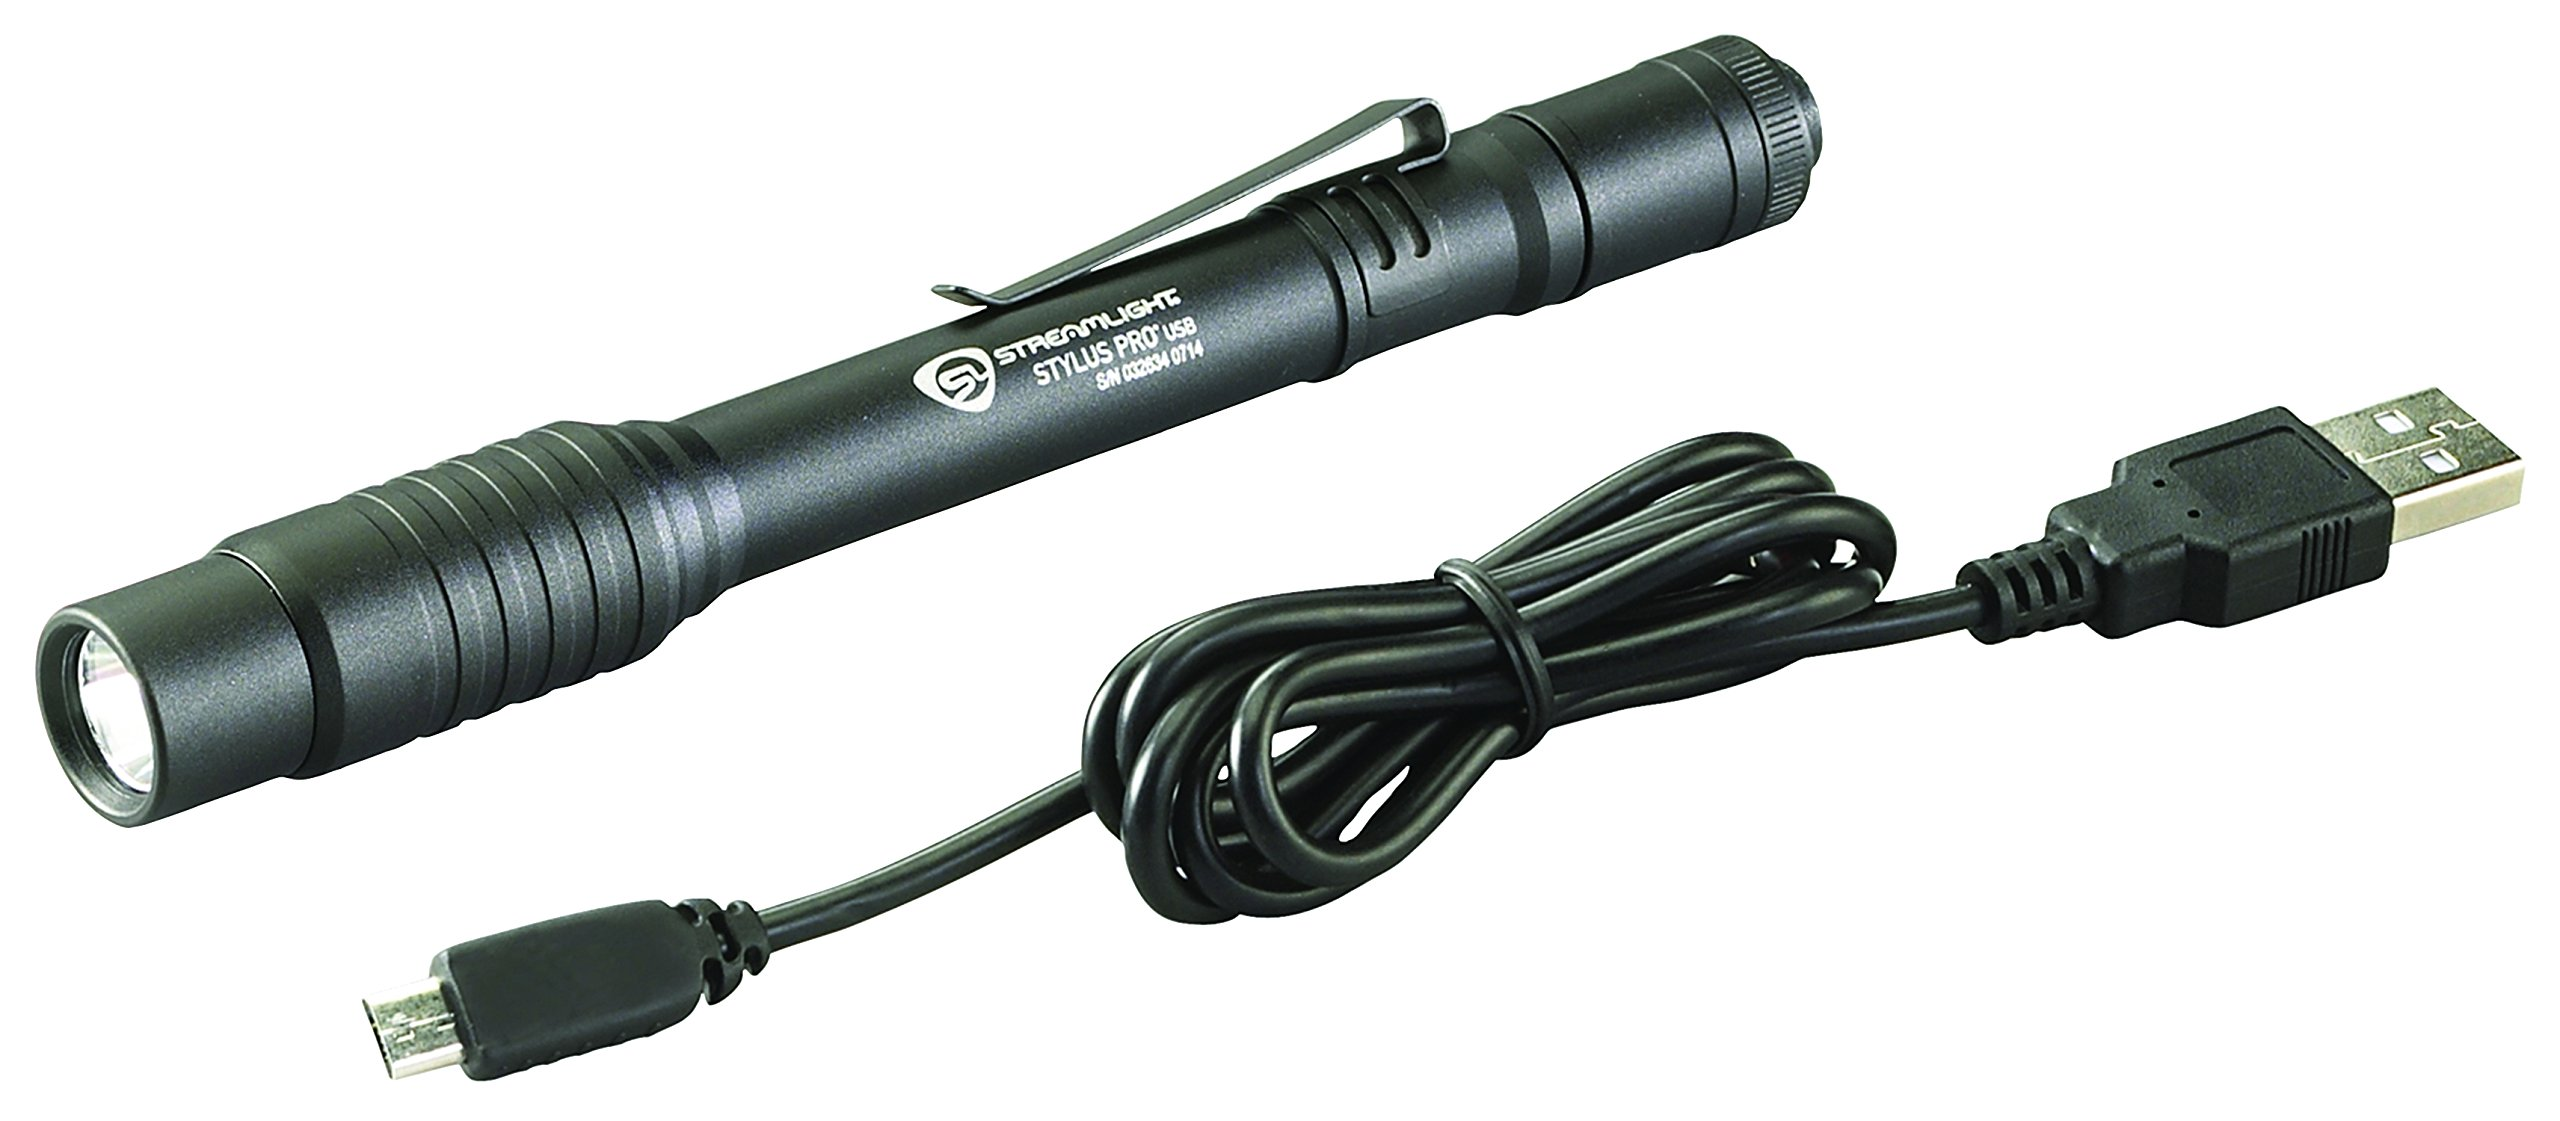 Streamlight 66134 Stylus Pro USB Rechargeable Penlight with Holster and Black/White LED - 250 Lumens